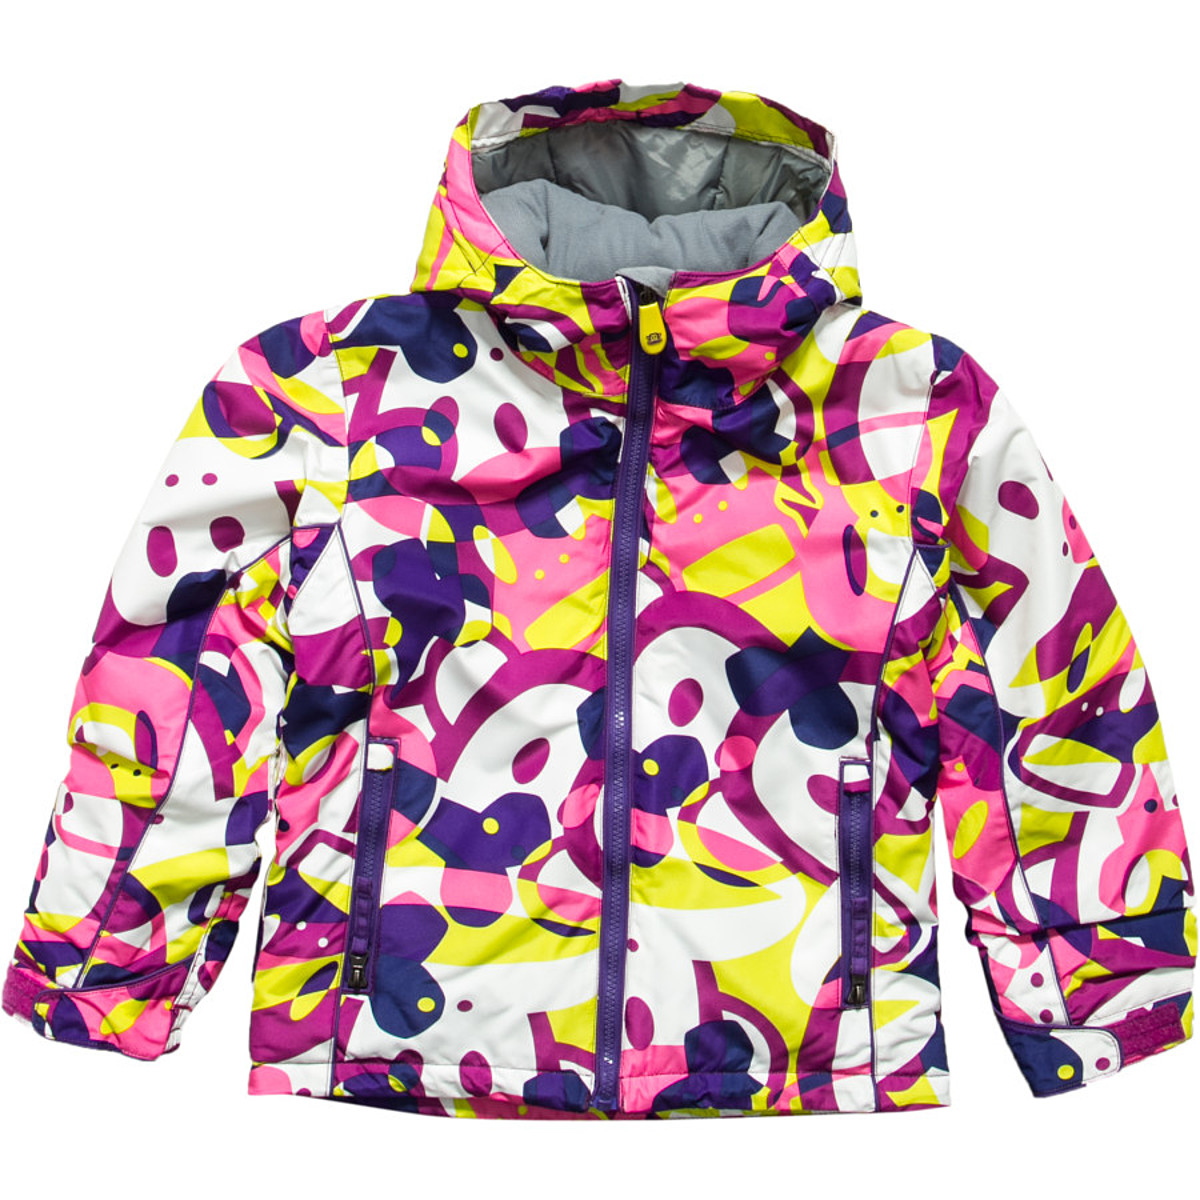 Paul Frank Julius Collage Insulated Jacket